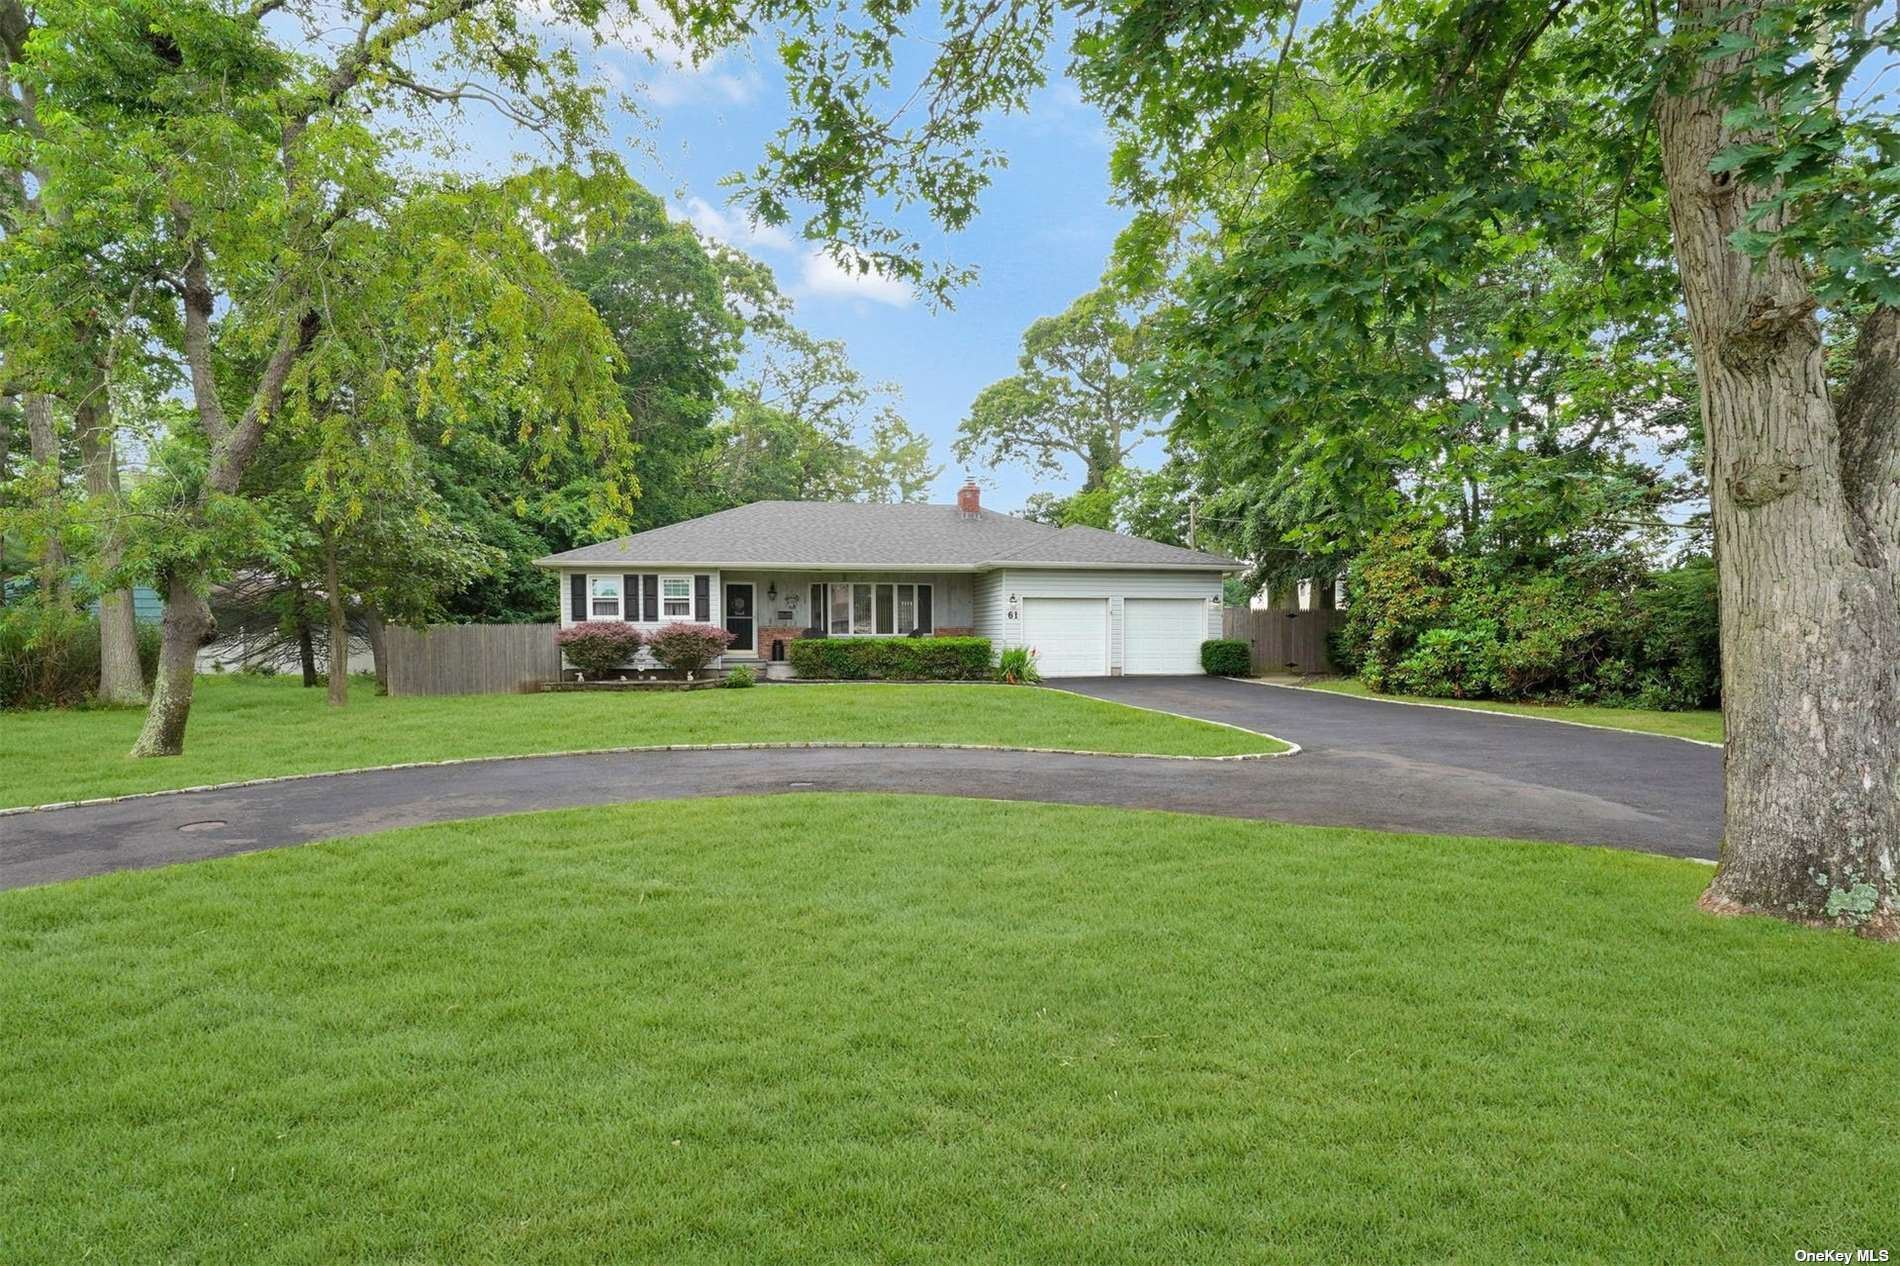 61 Timberpoint Road, East Islip, NY 11730 - MLS#: 3330196